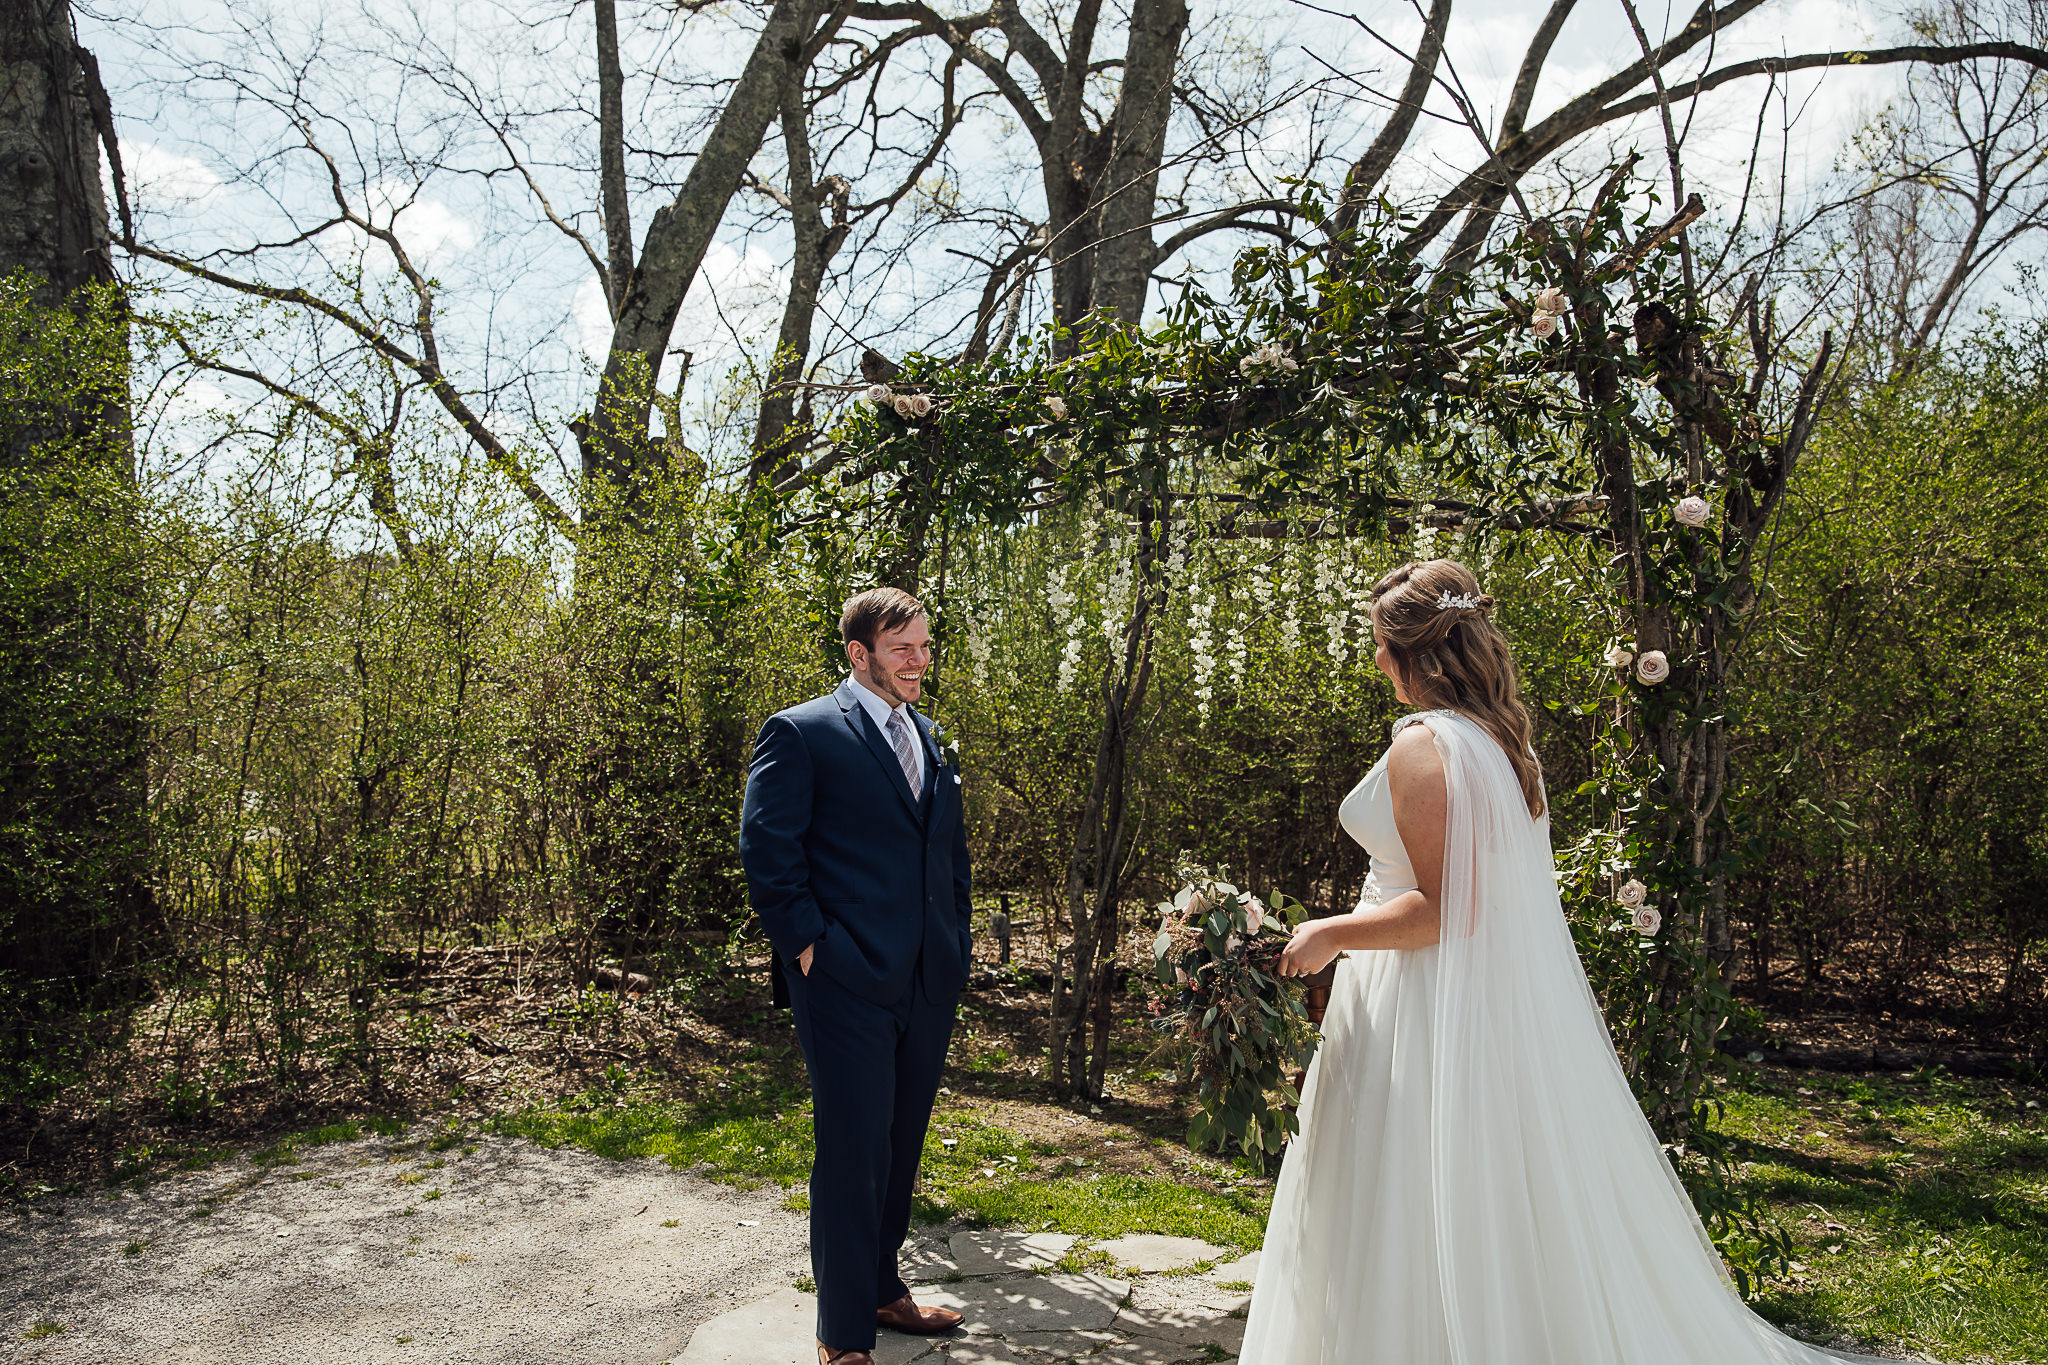 memphis-wedding-photographer-meadow-hill-farms-thewarmtharoundyou (7 of 93).jpg